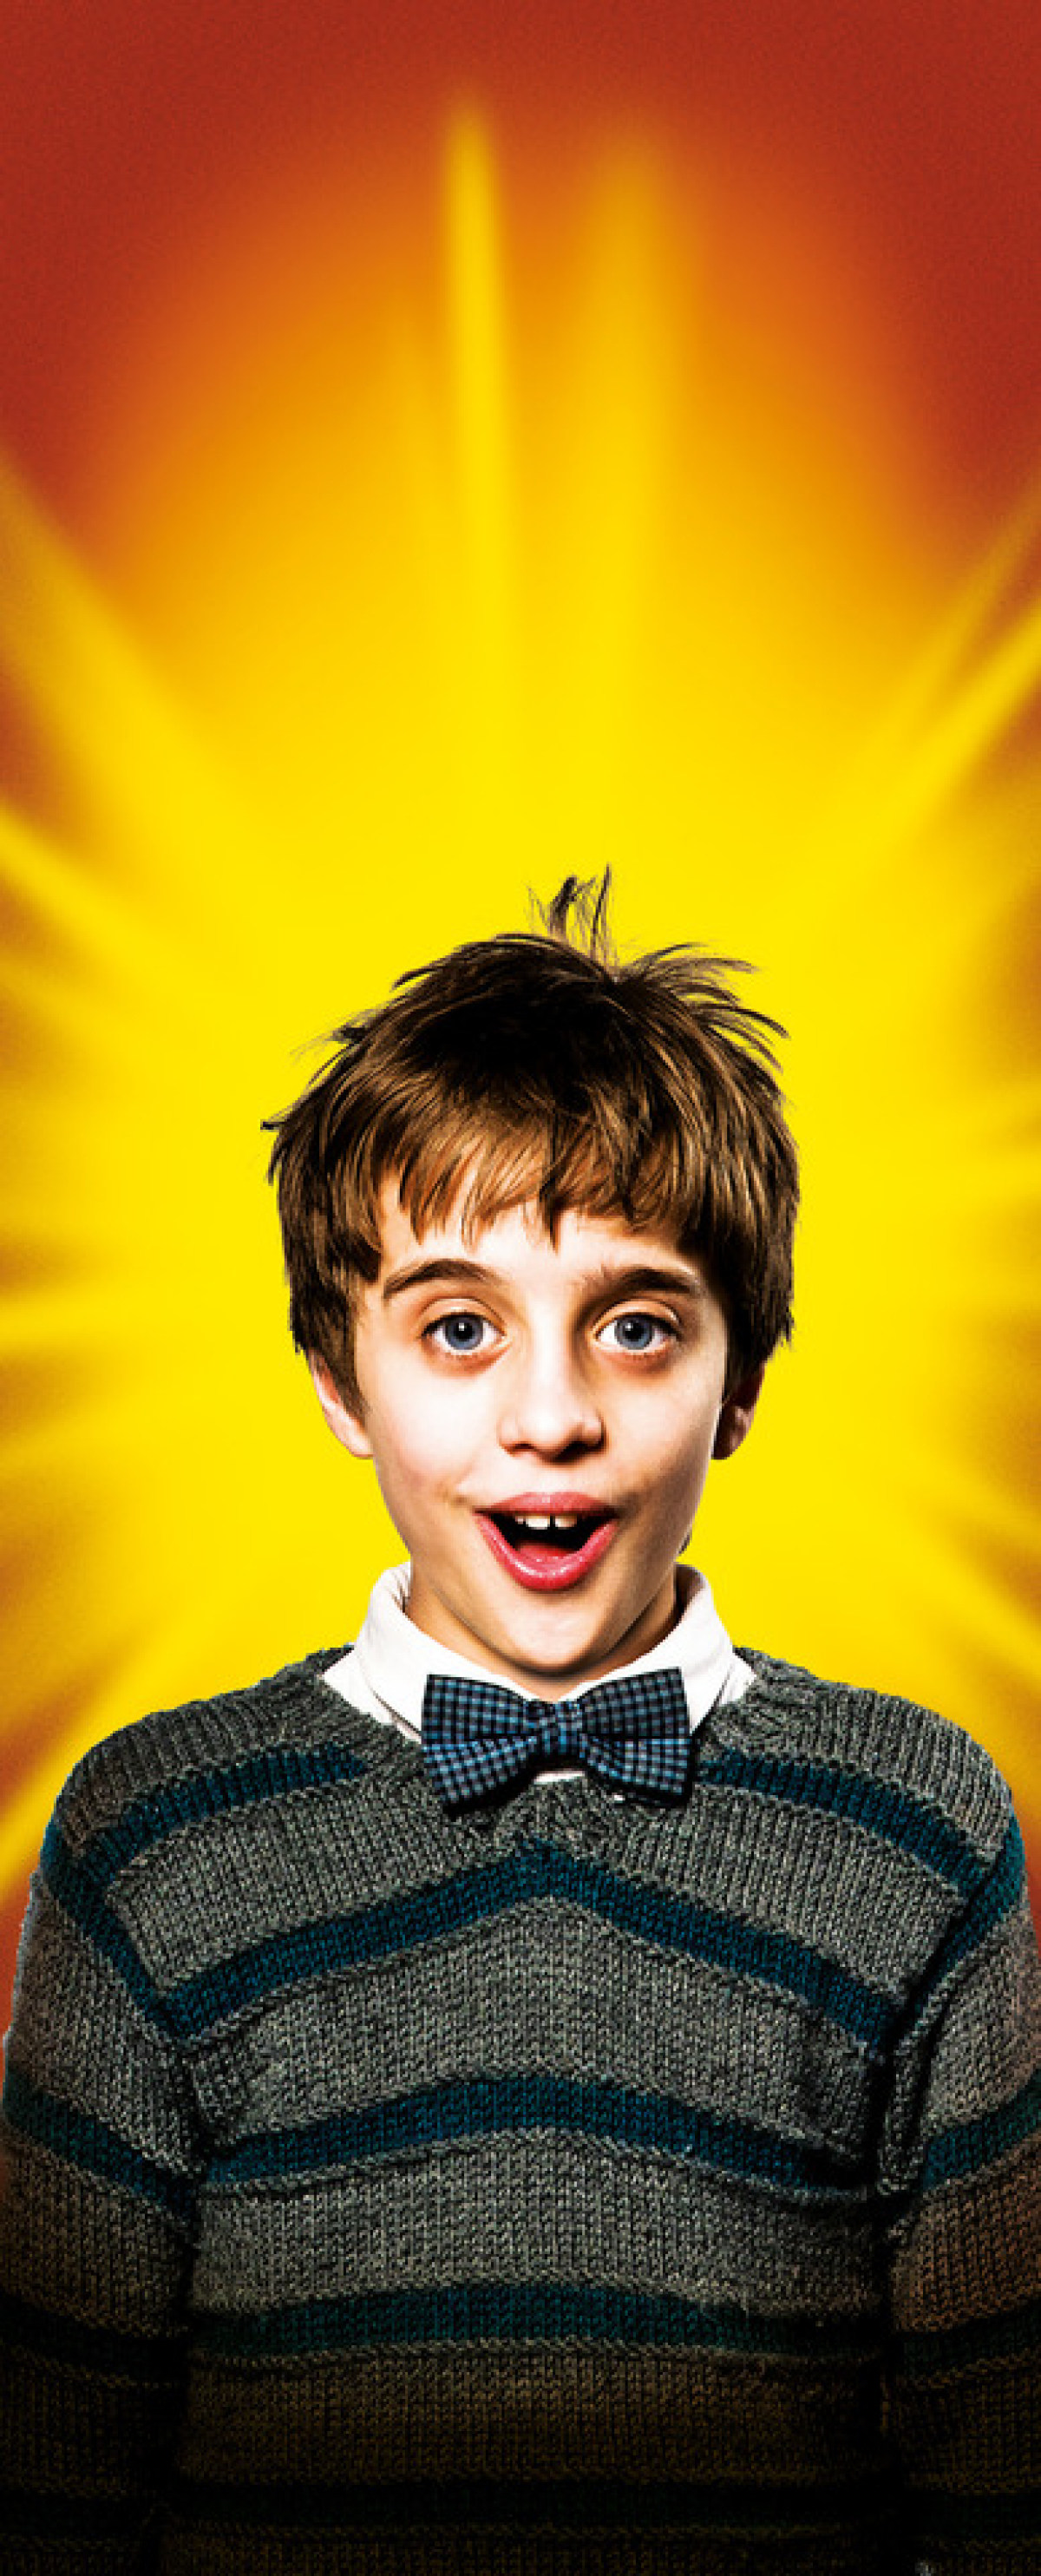 New Pics Released Of Charlie And The Chocolate Factory